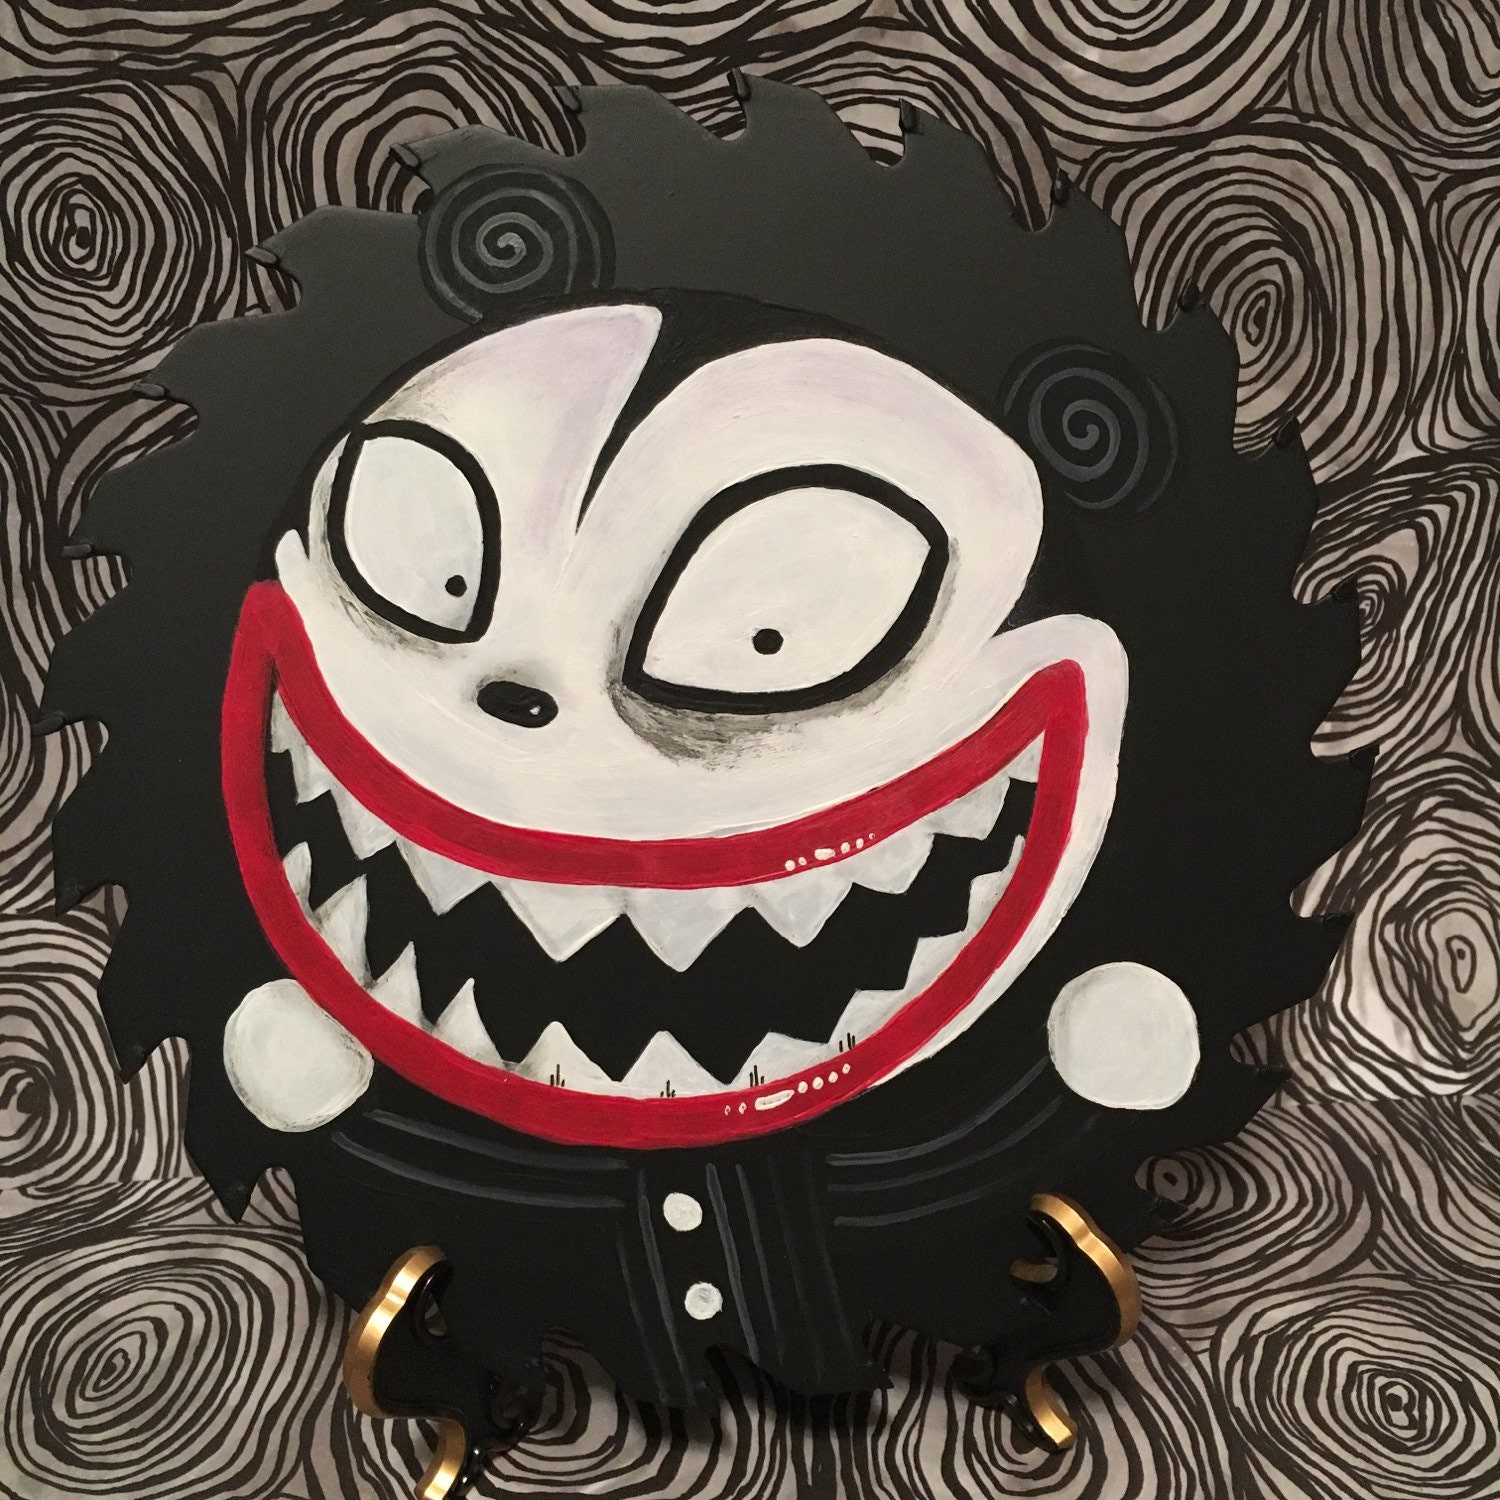 Scary Teddy from Nightmare Before Christmas on a real Circular   Etsy